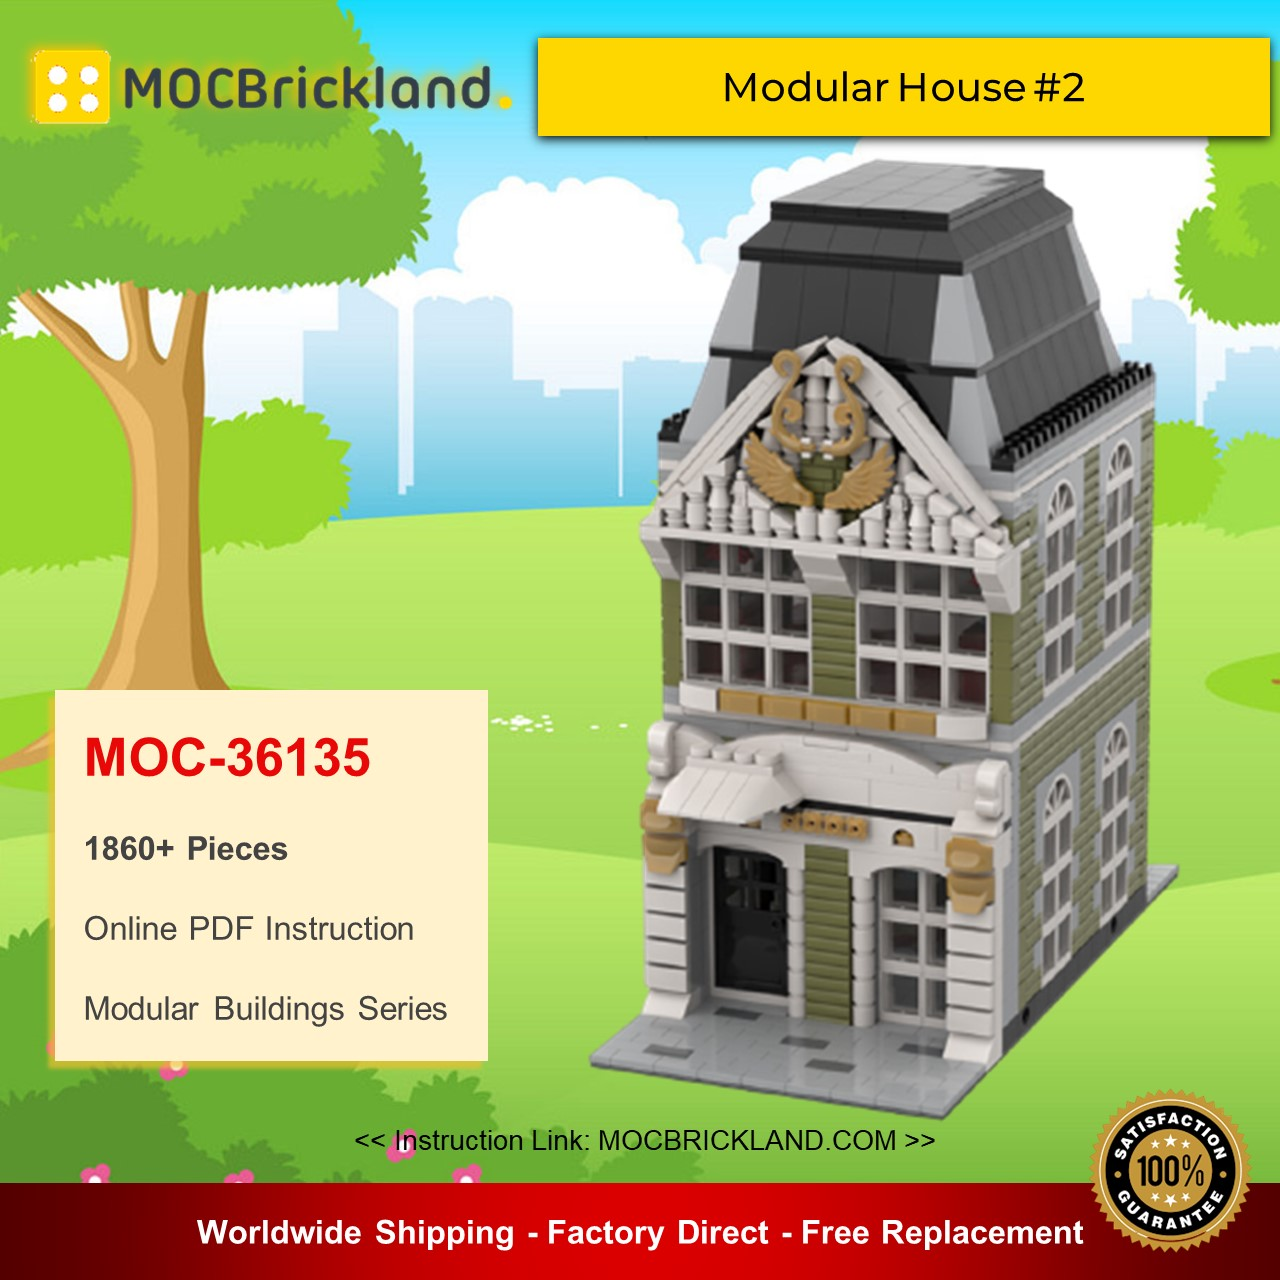 Modular Buildings MOC-36135 Modular House #2 By gabizon MOCBRICKLAND